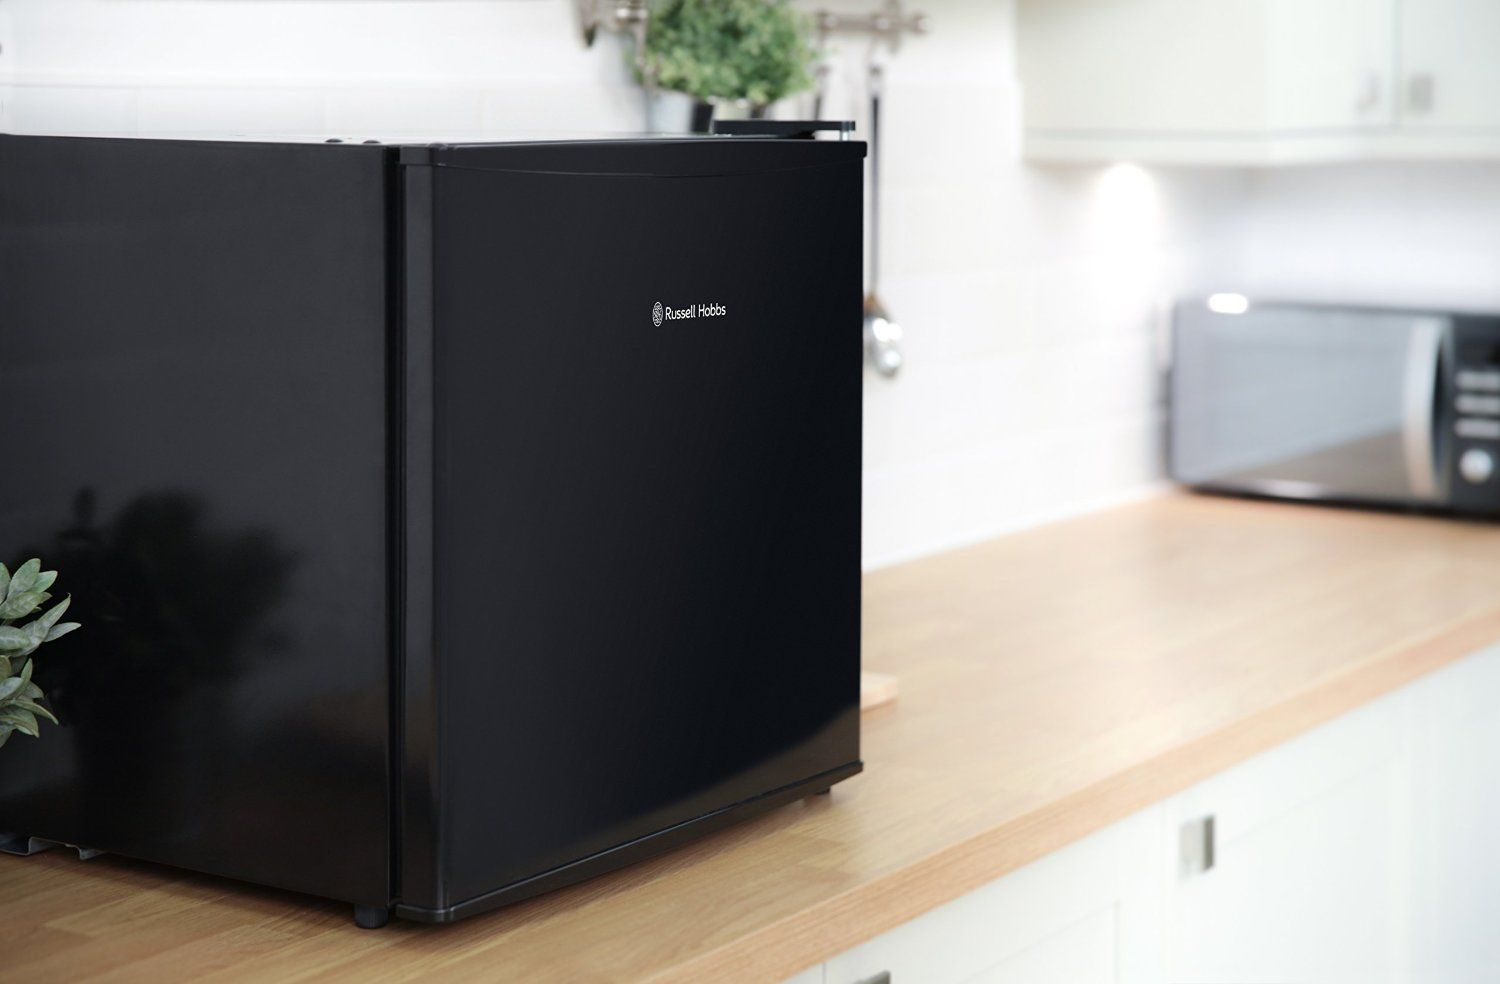 Yellow Fridge Freezer Russell Hobbs Fridge 45 Litre Black Amazon Co Uk Large